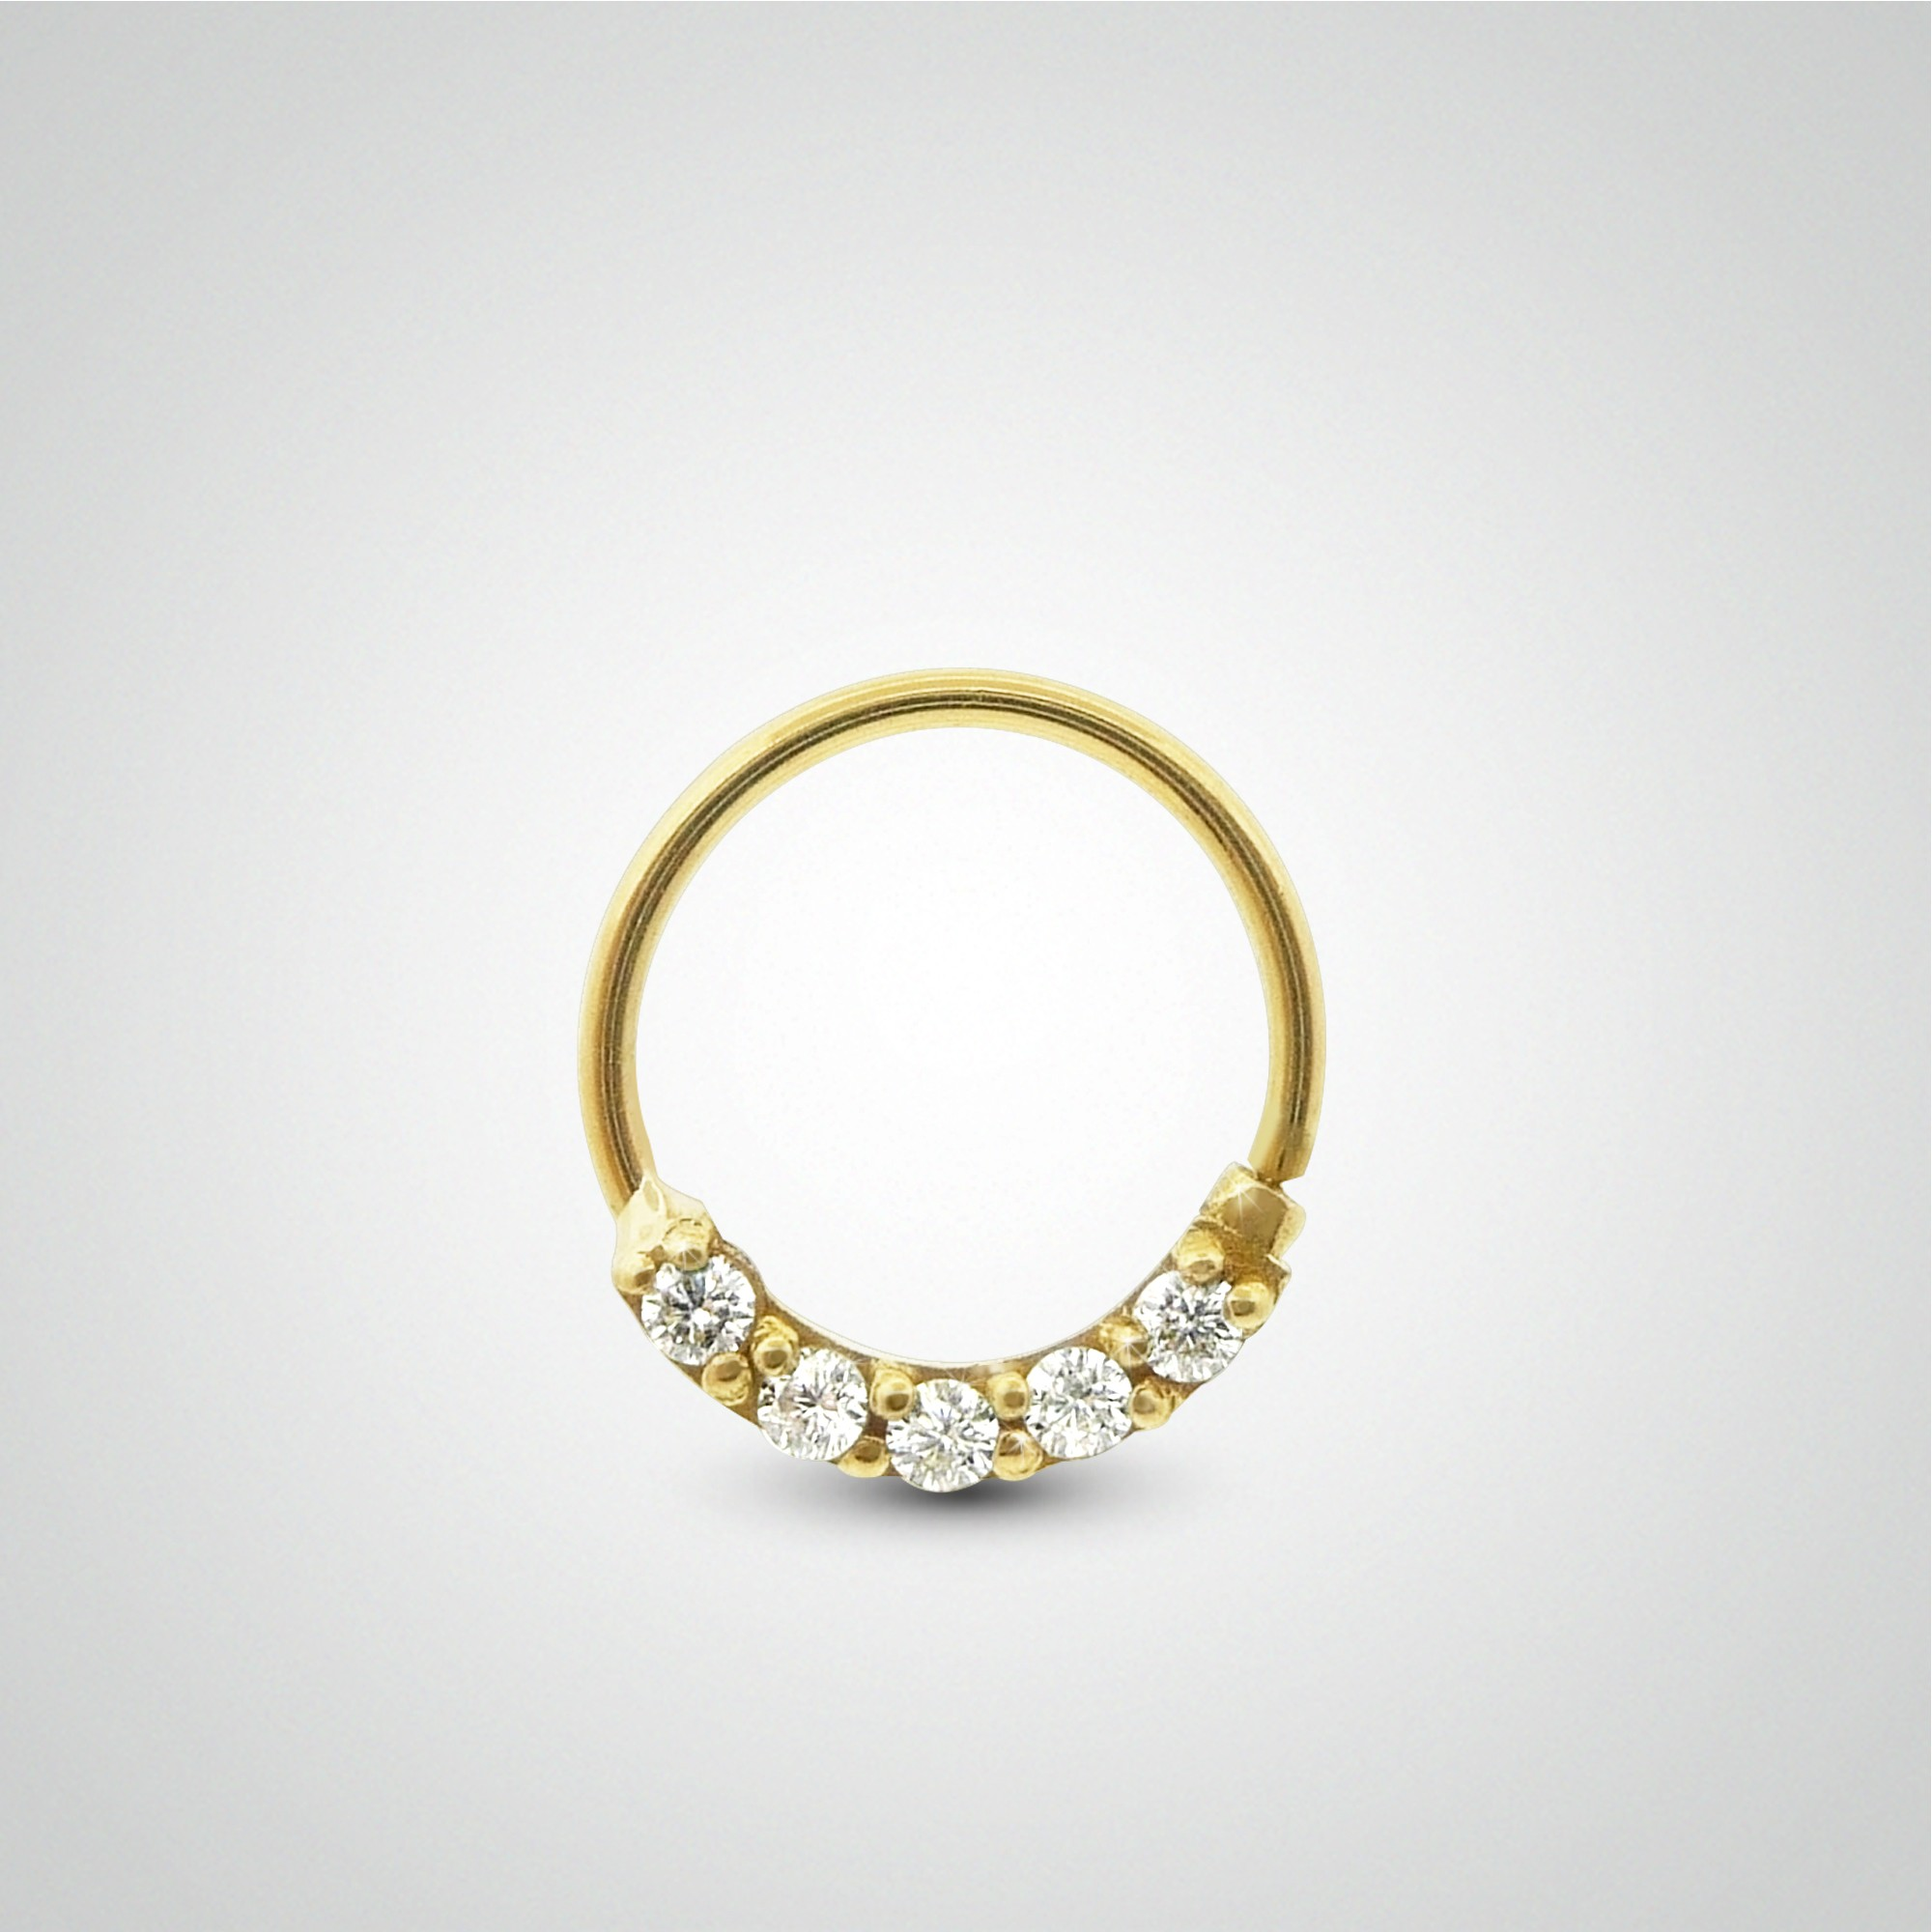 piercing-helix-anneau-or-jaune-18-carats-luxe